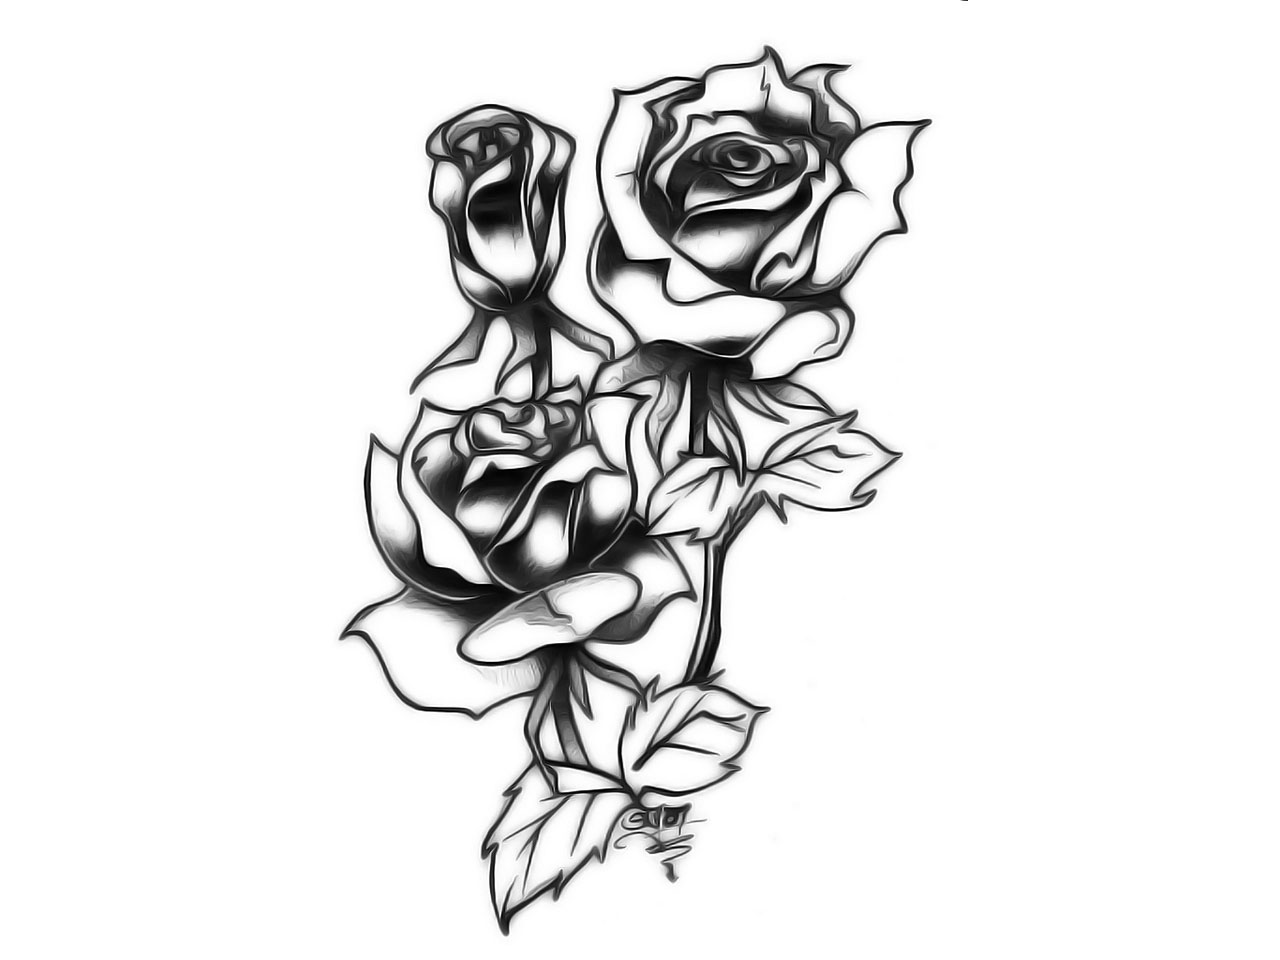 1280x960 Collection Of Tribal Roses Tattoo Designs